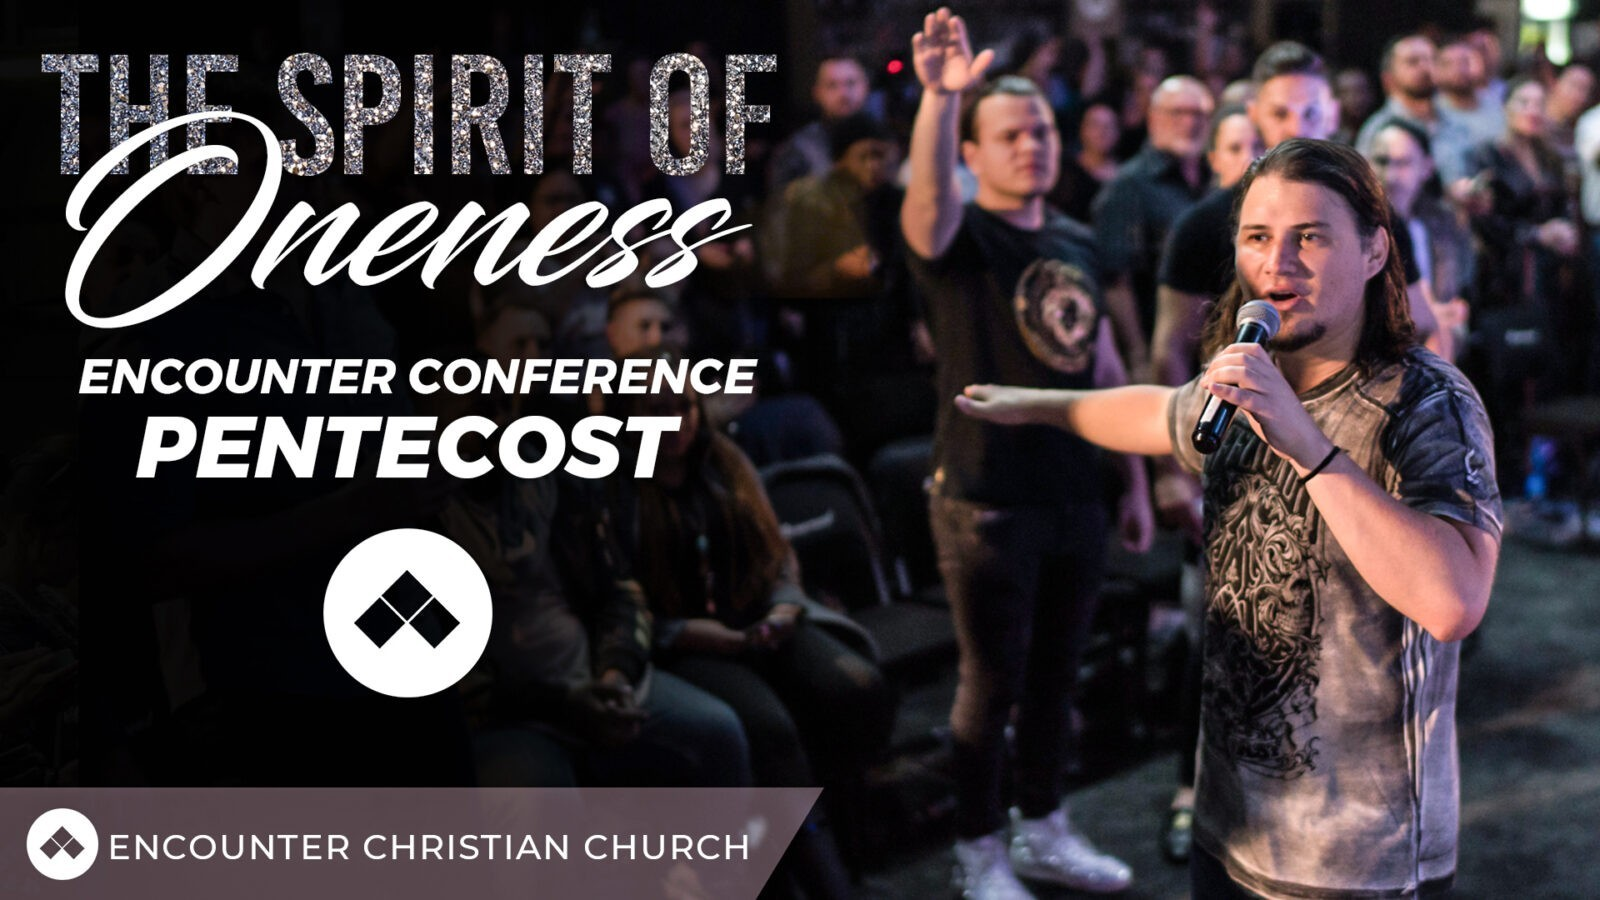 Encounter Conference – The Spirit of Oneness